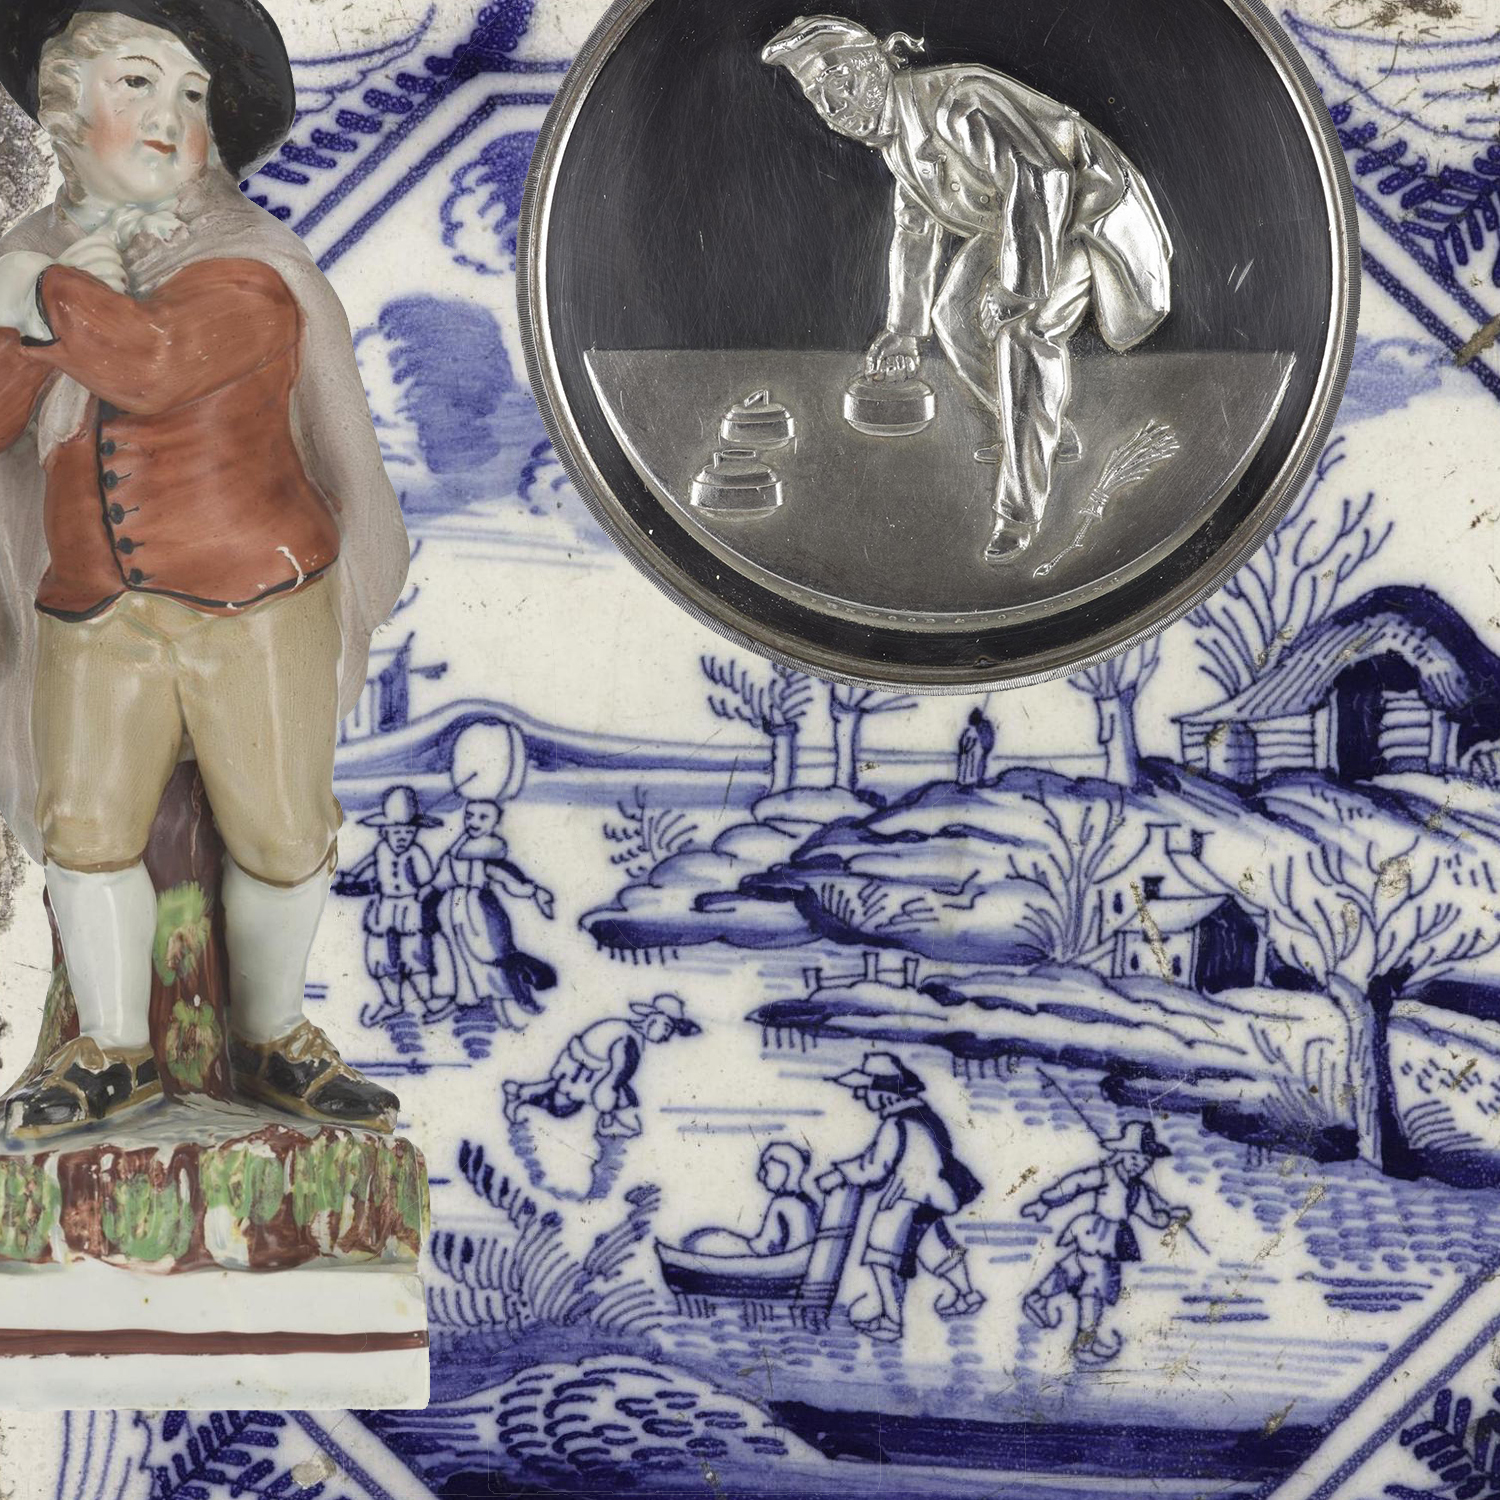 Montage of an earthenware figure of a boy skating, an enamelled earthenware tile painted in blue with a skating scene and a silver medal for curling.